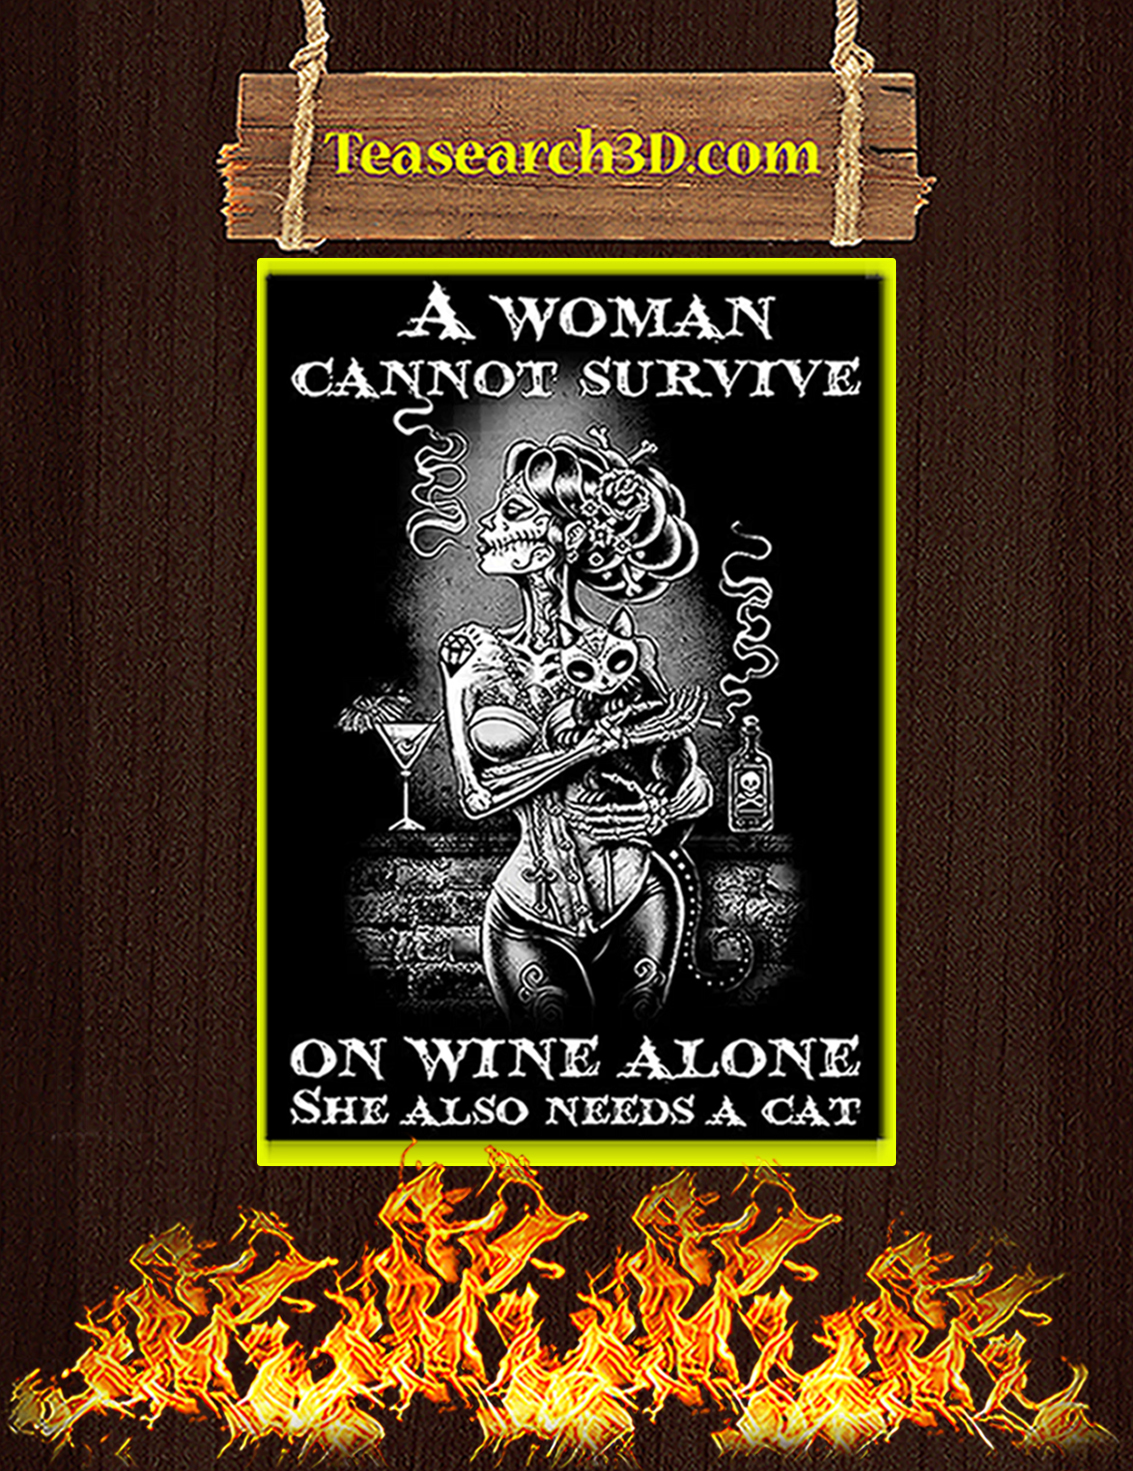 A woman cannot survive on wine alone she also needs a cat poster A3